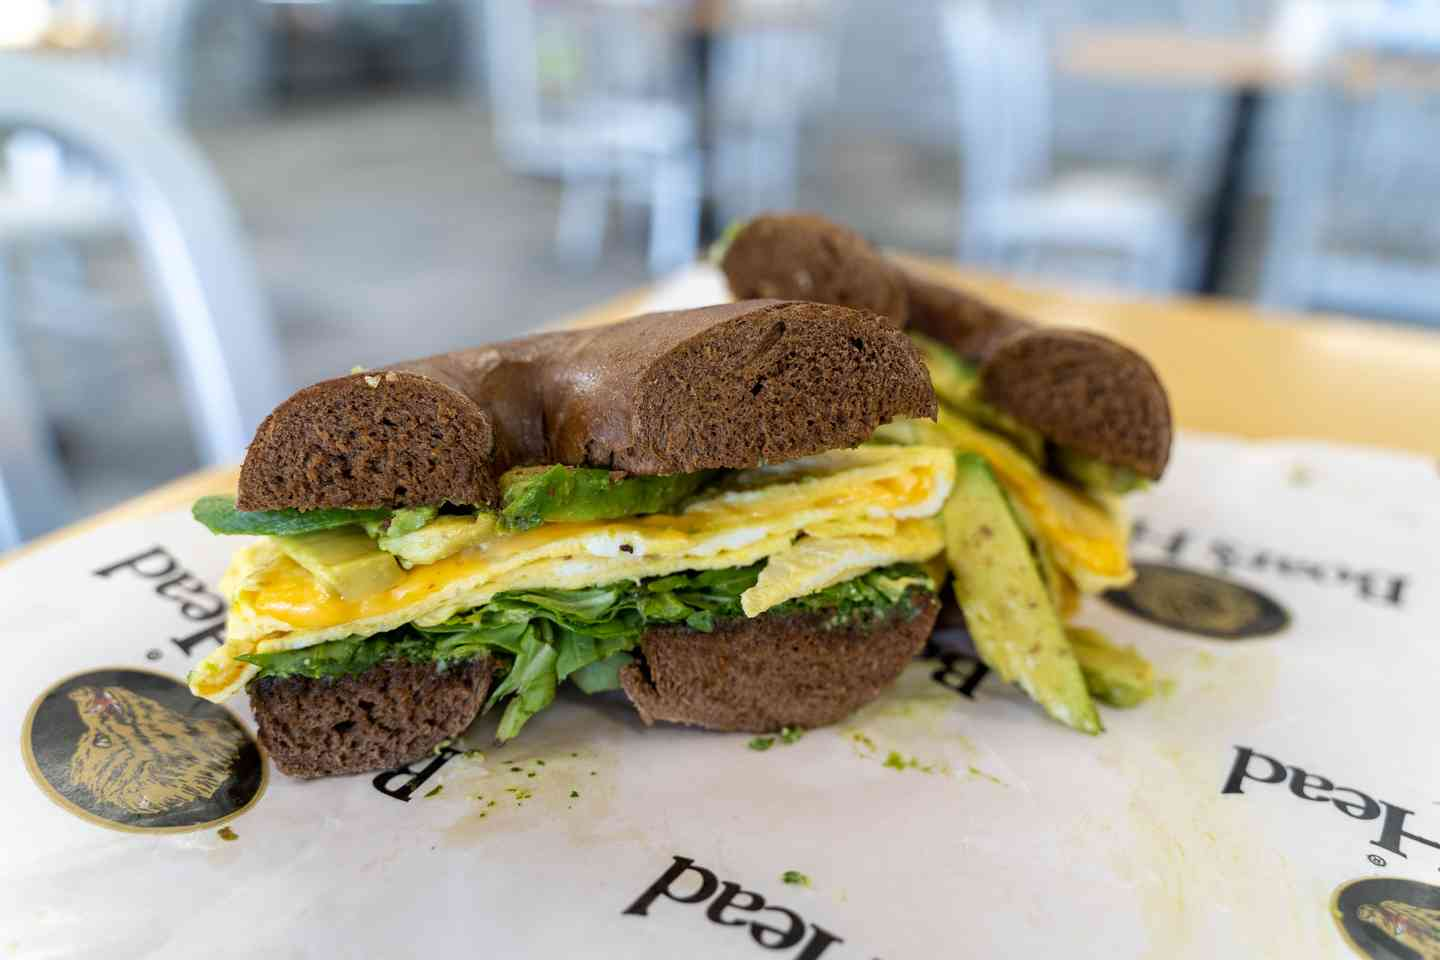 Egg & Cheese with Arugula & Avocado